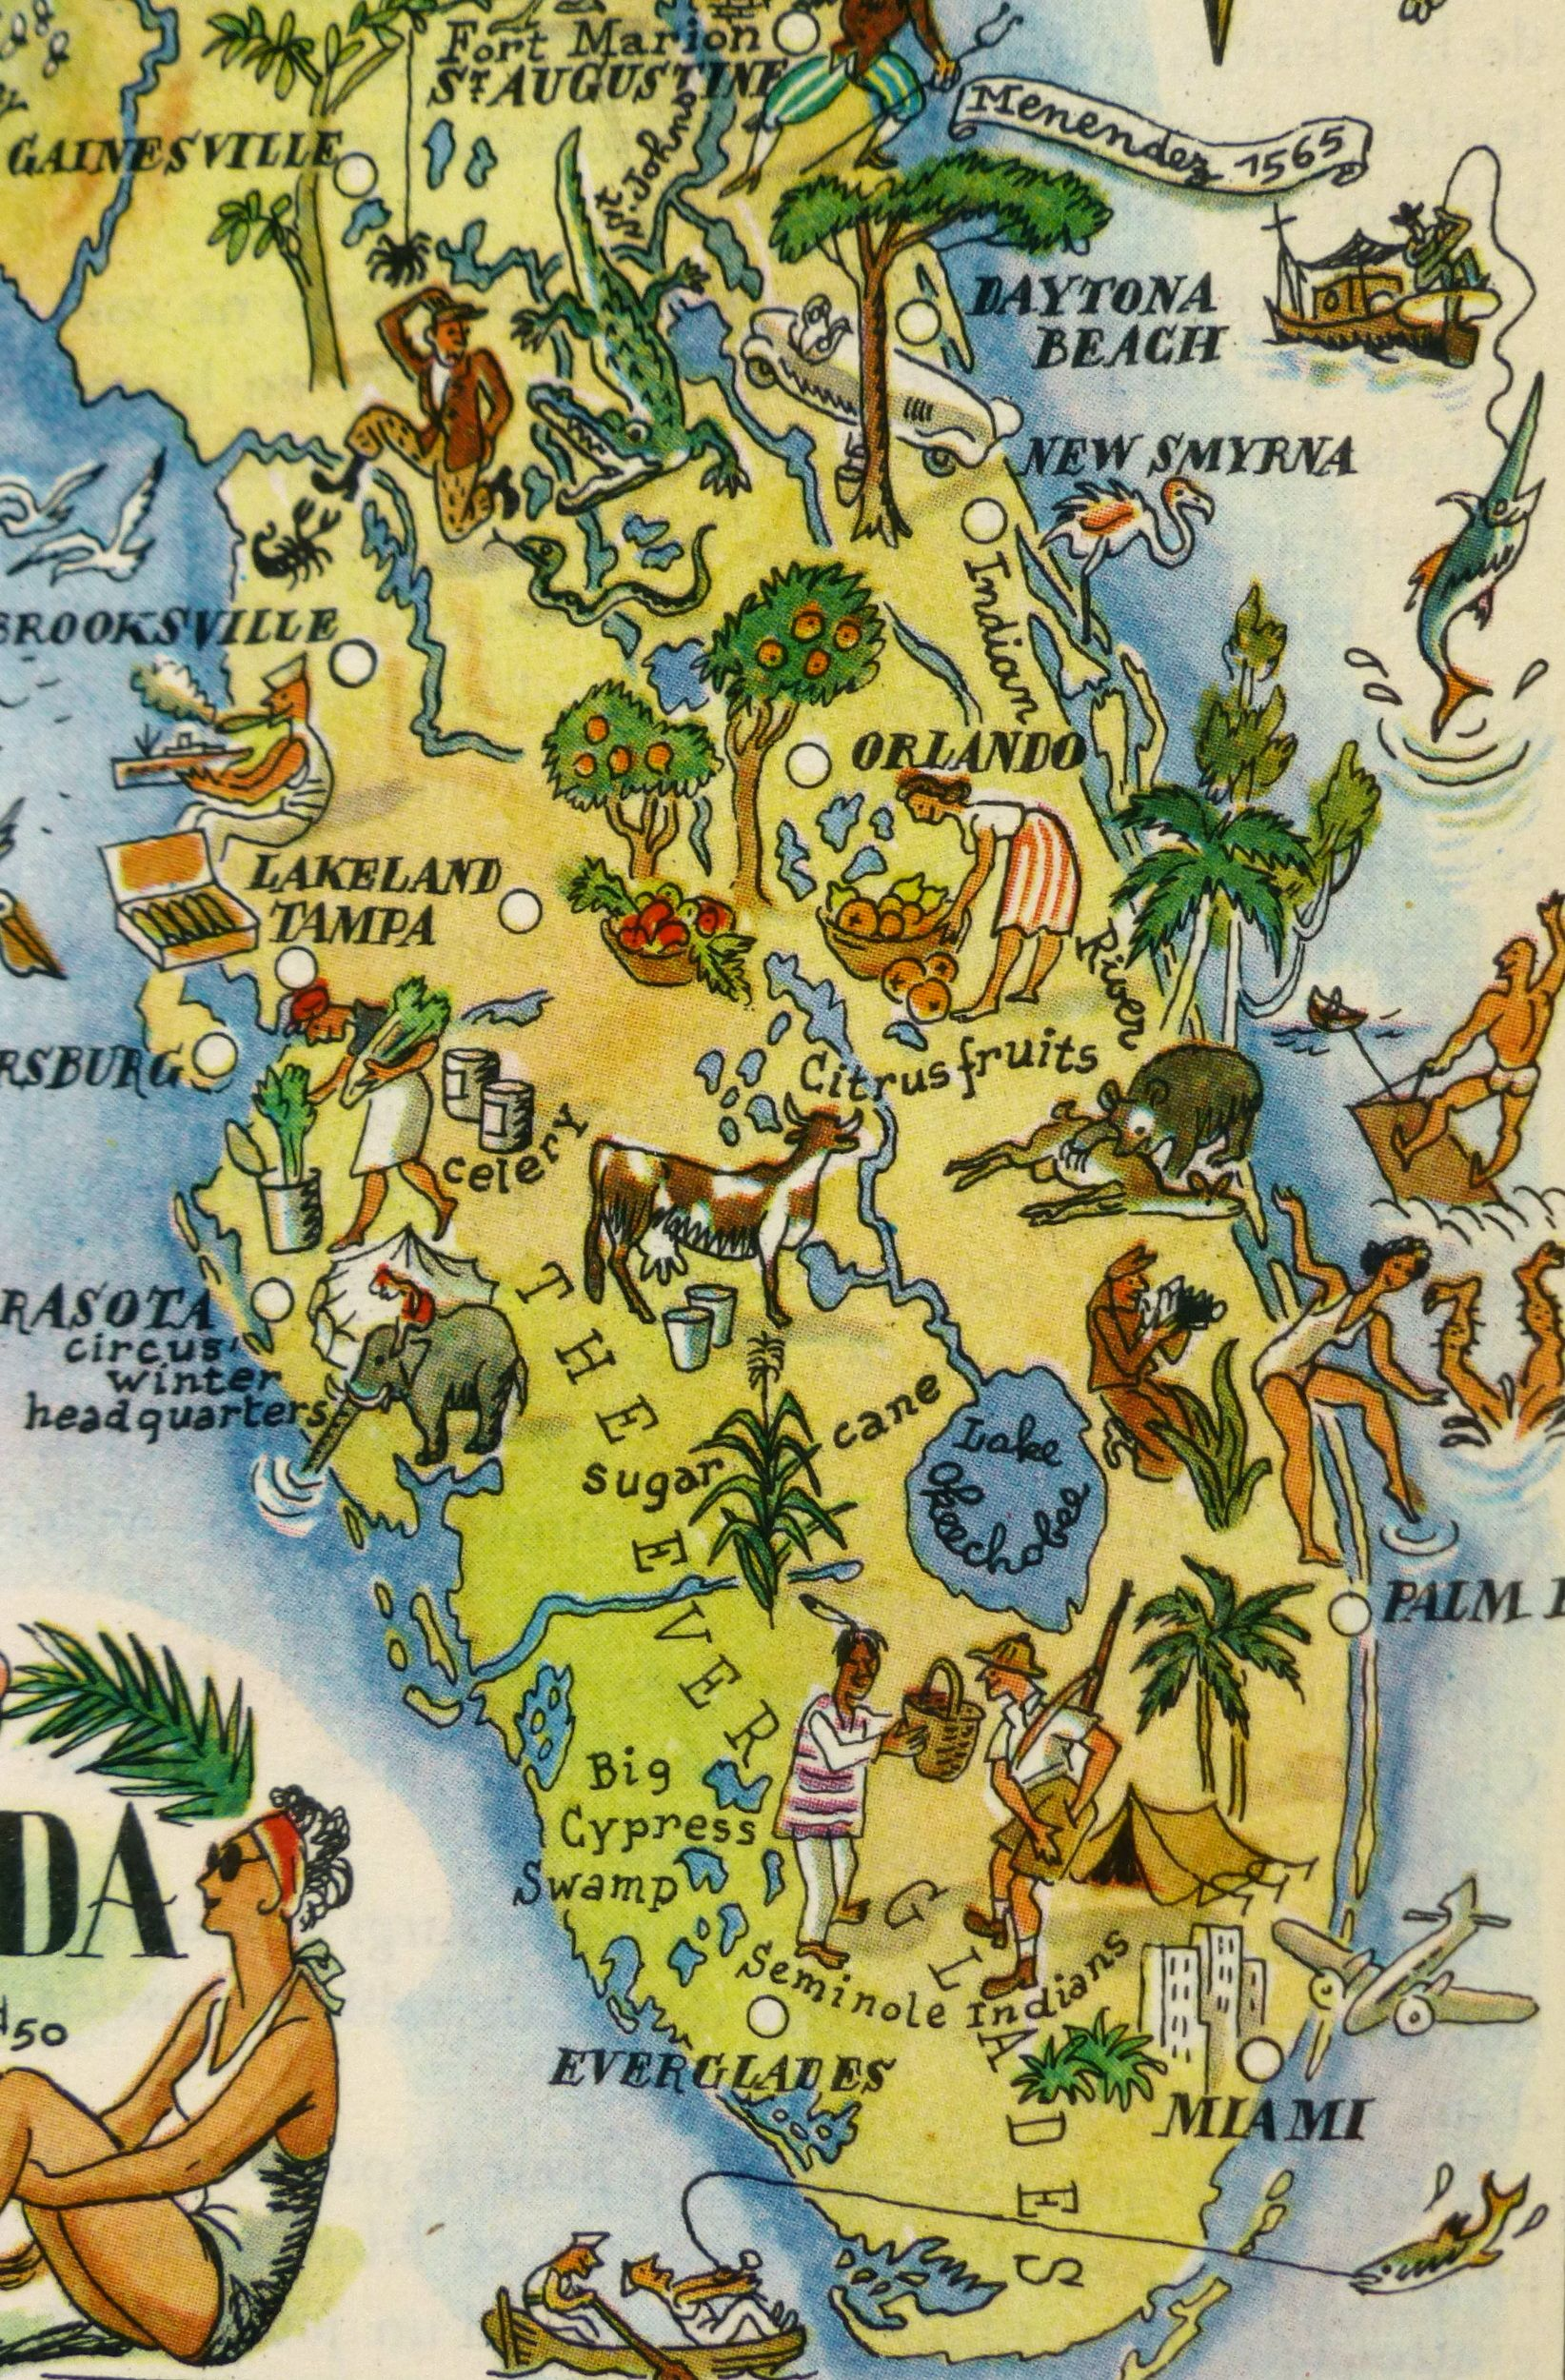 Detail Map Of Florida.Florida Pictorial Map 1946 In 2019 Florida Road Trip Pictorial